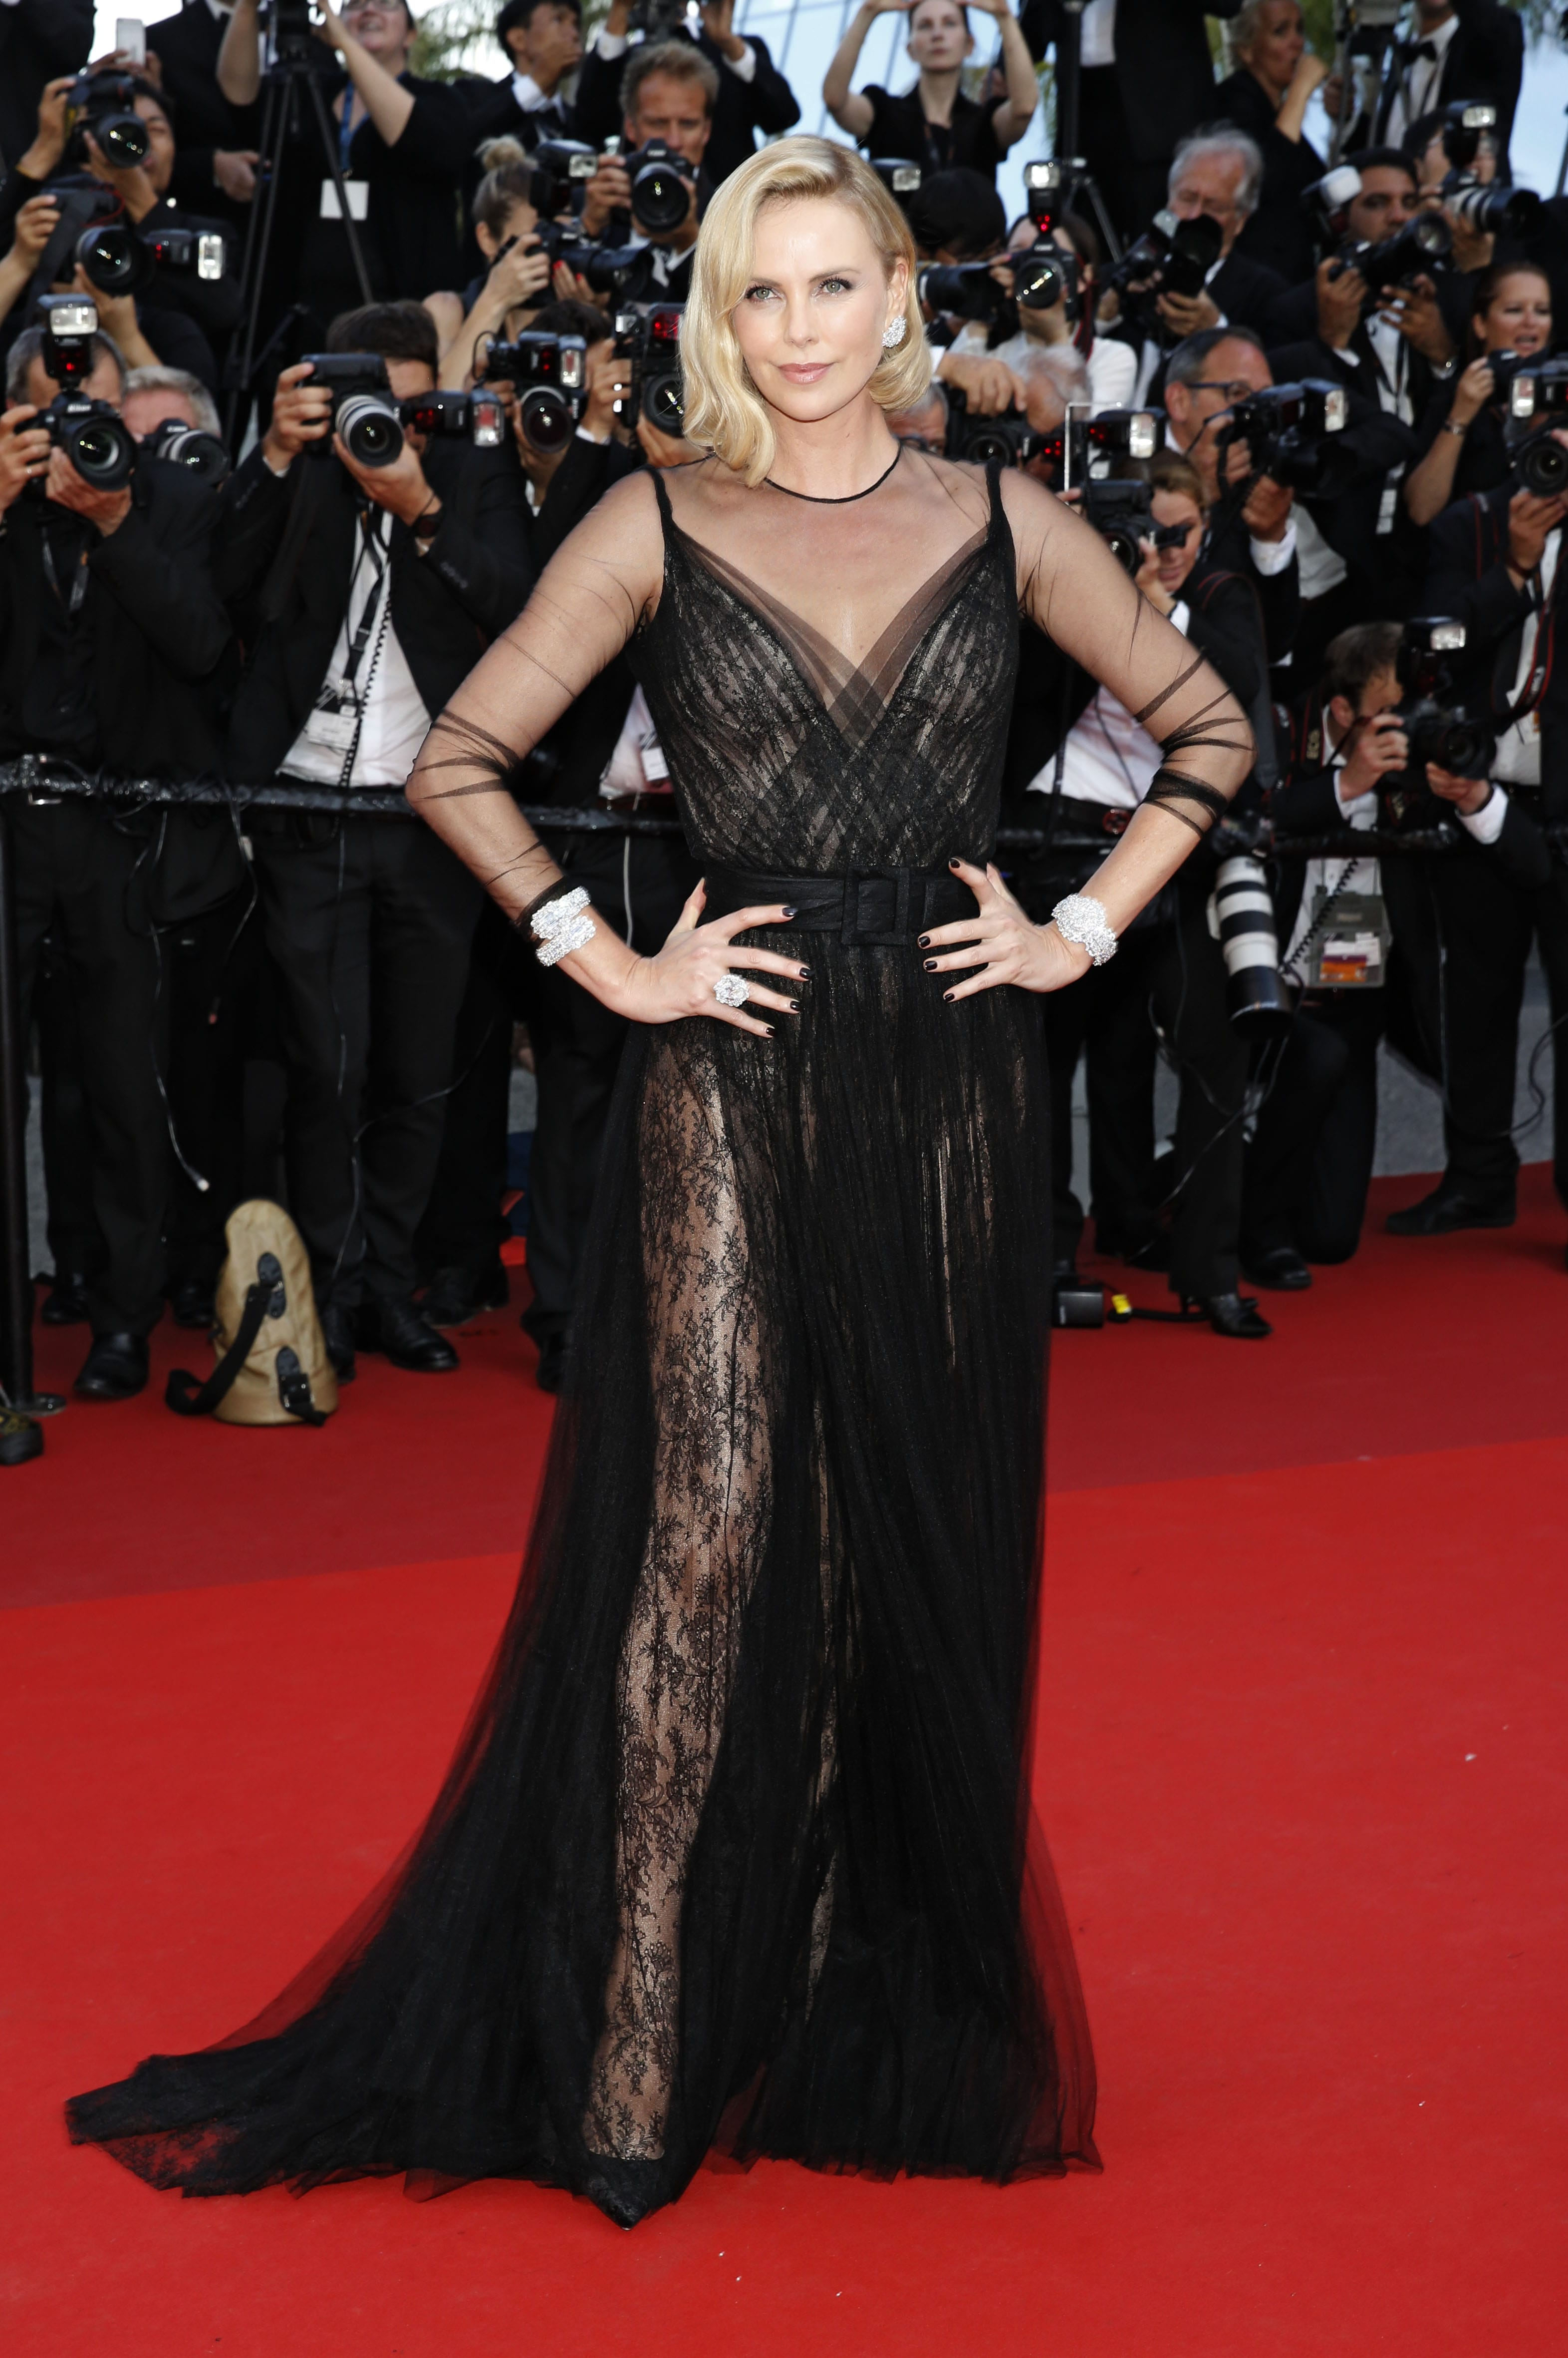 8c37a5d4ec Charlize Theron arrived at the Cannes Film Festival 70th Anniversary Gala  in full glam